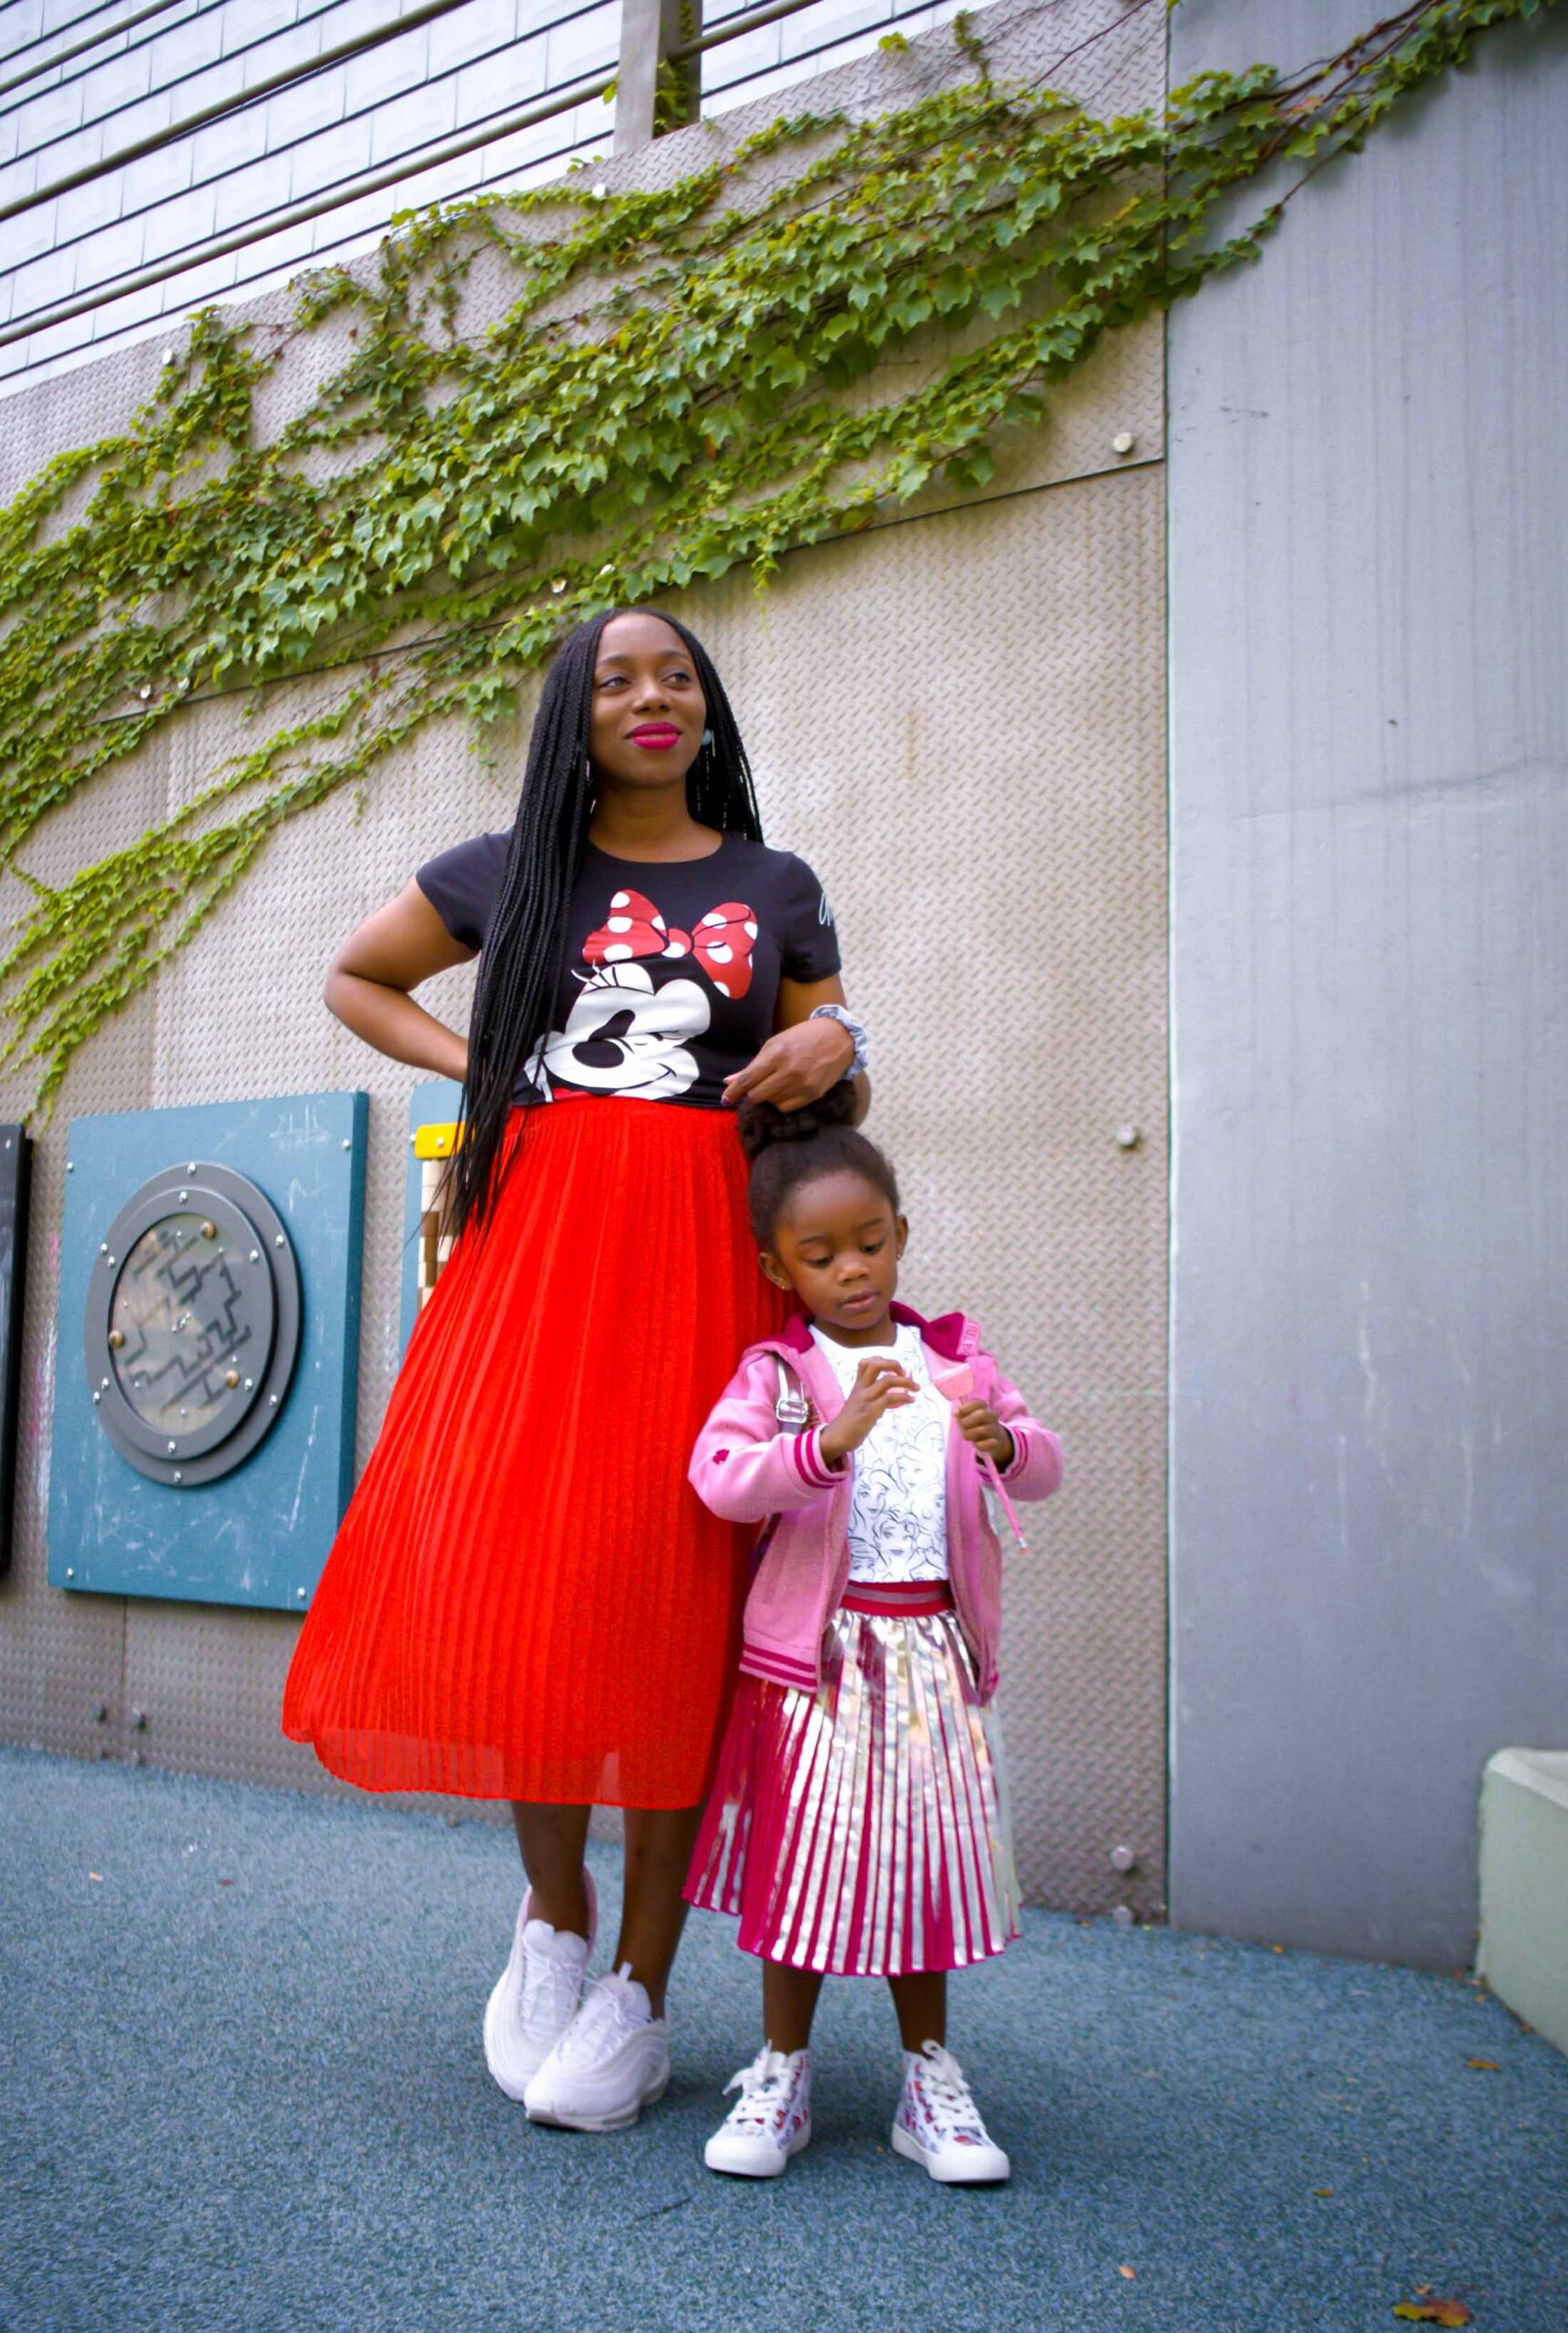 I'm raising a walking talking shopDisney fan girl. All things princesses & Minnie Mouse make her heart sing. shopDisney's selection of cute-yet-practical apparel did not disappoint!